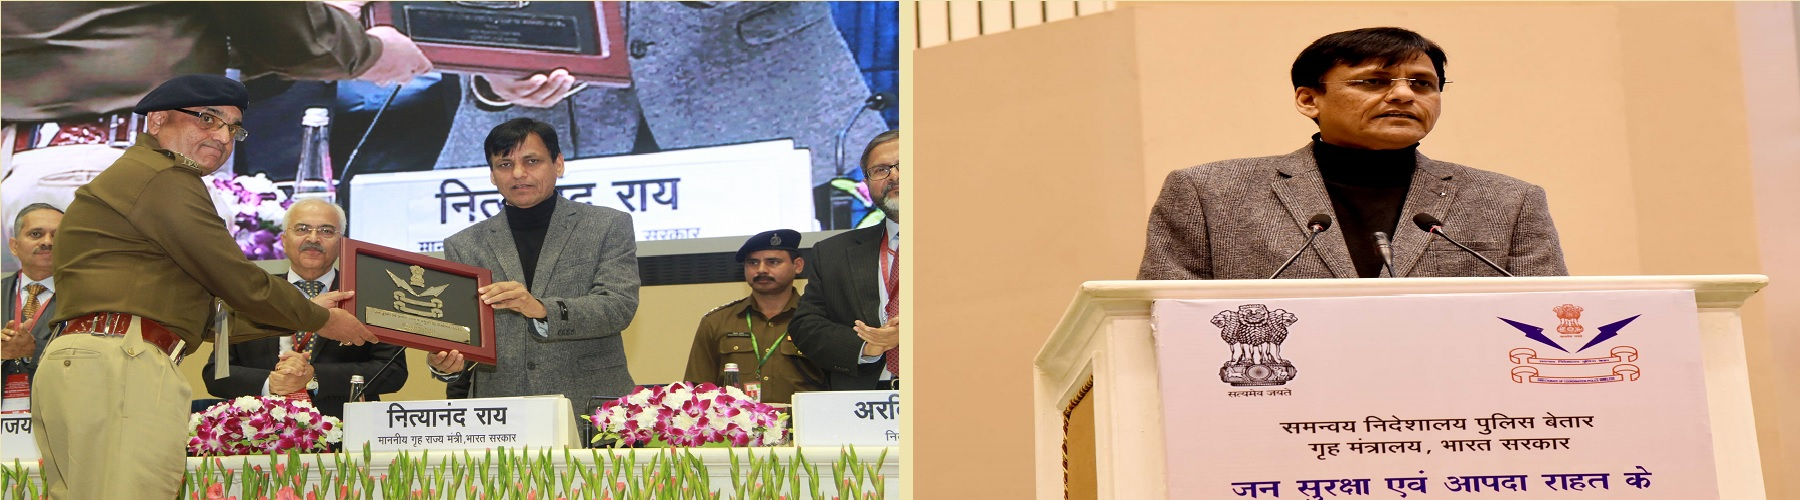 Union Minister of State for Home Affairs Shri Nityanand Rai inaugurates the Confernce of the Heads of Public Protection and Disaster Relief organizations, convened by the Directorate of Coordination Police Wireless (DCPW) in New Delhi on January 20, 2020.